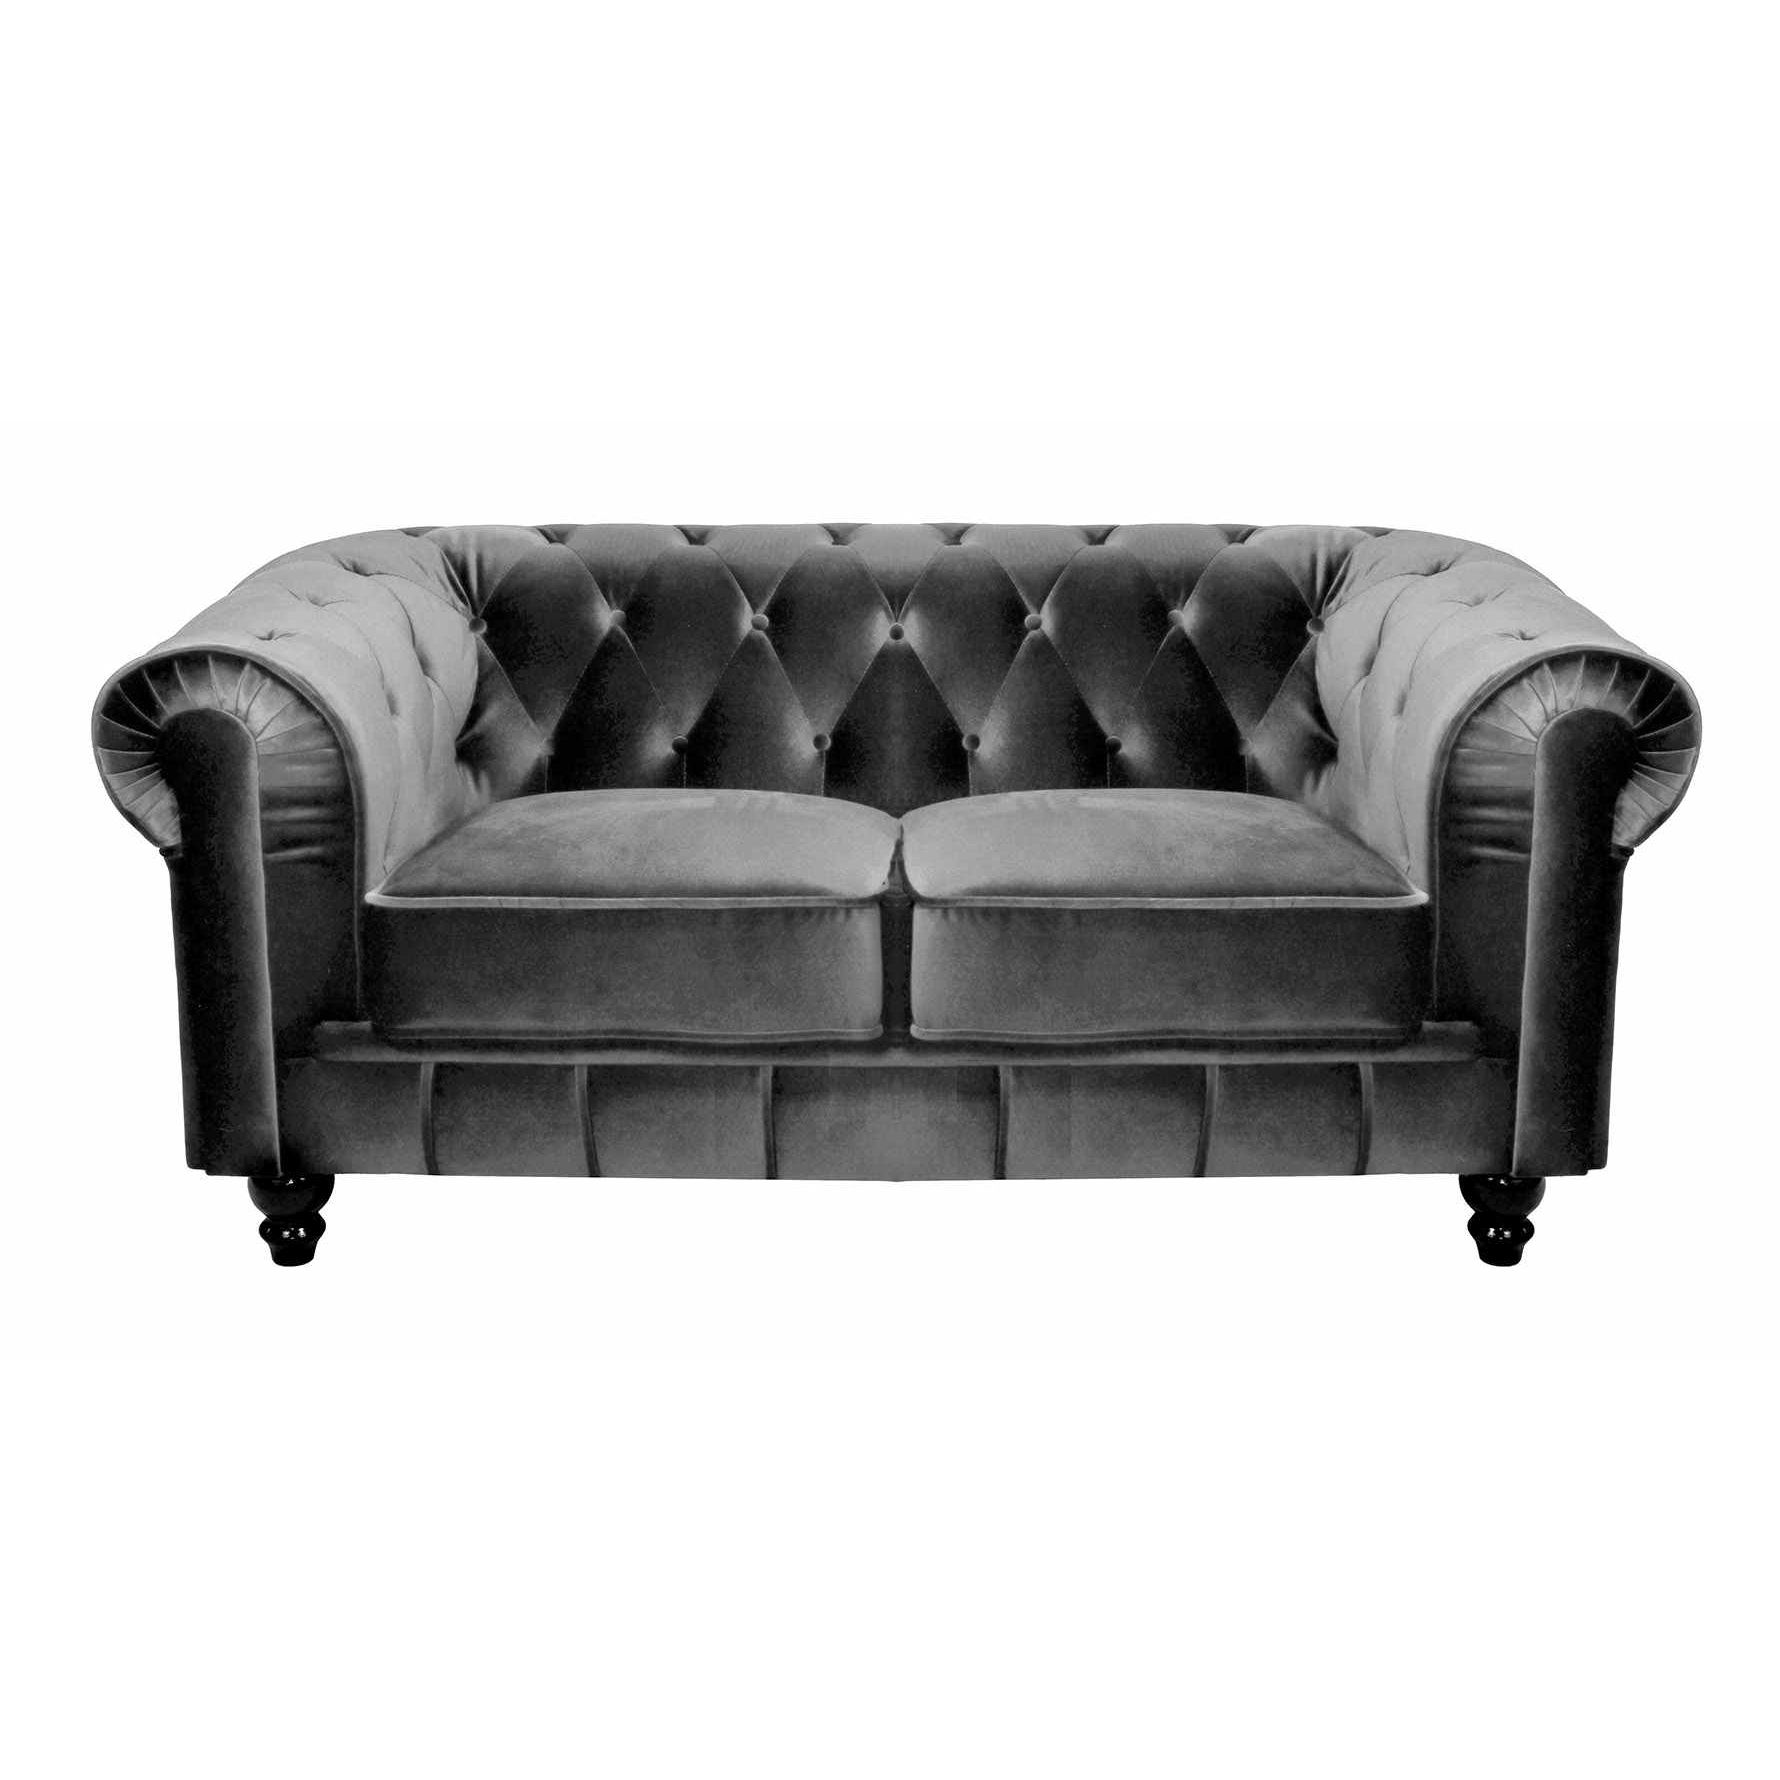 Deco in paris canape 2 places velours gris chesterfield can chester 2p velo - Canape chesterfield violet ...